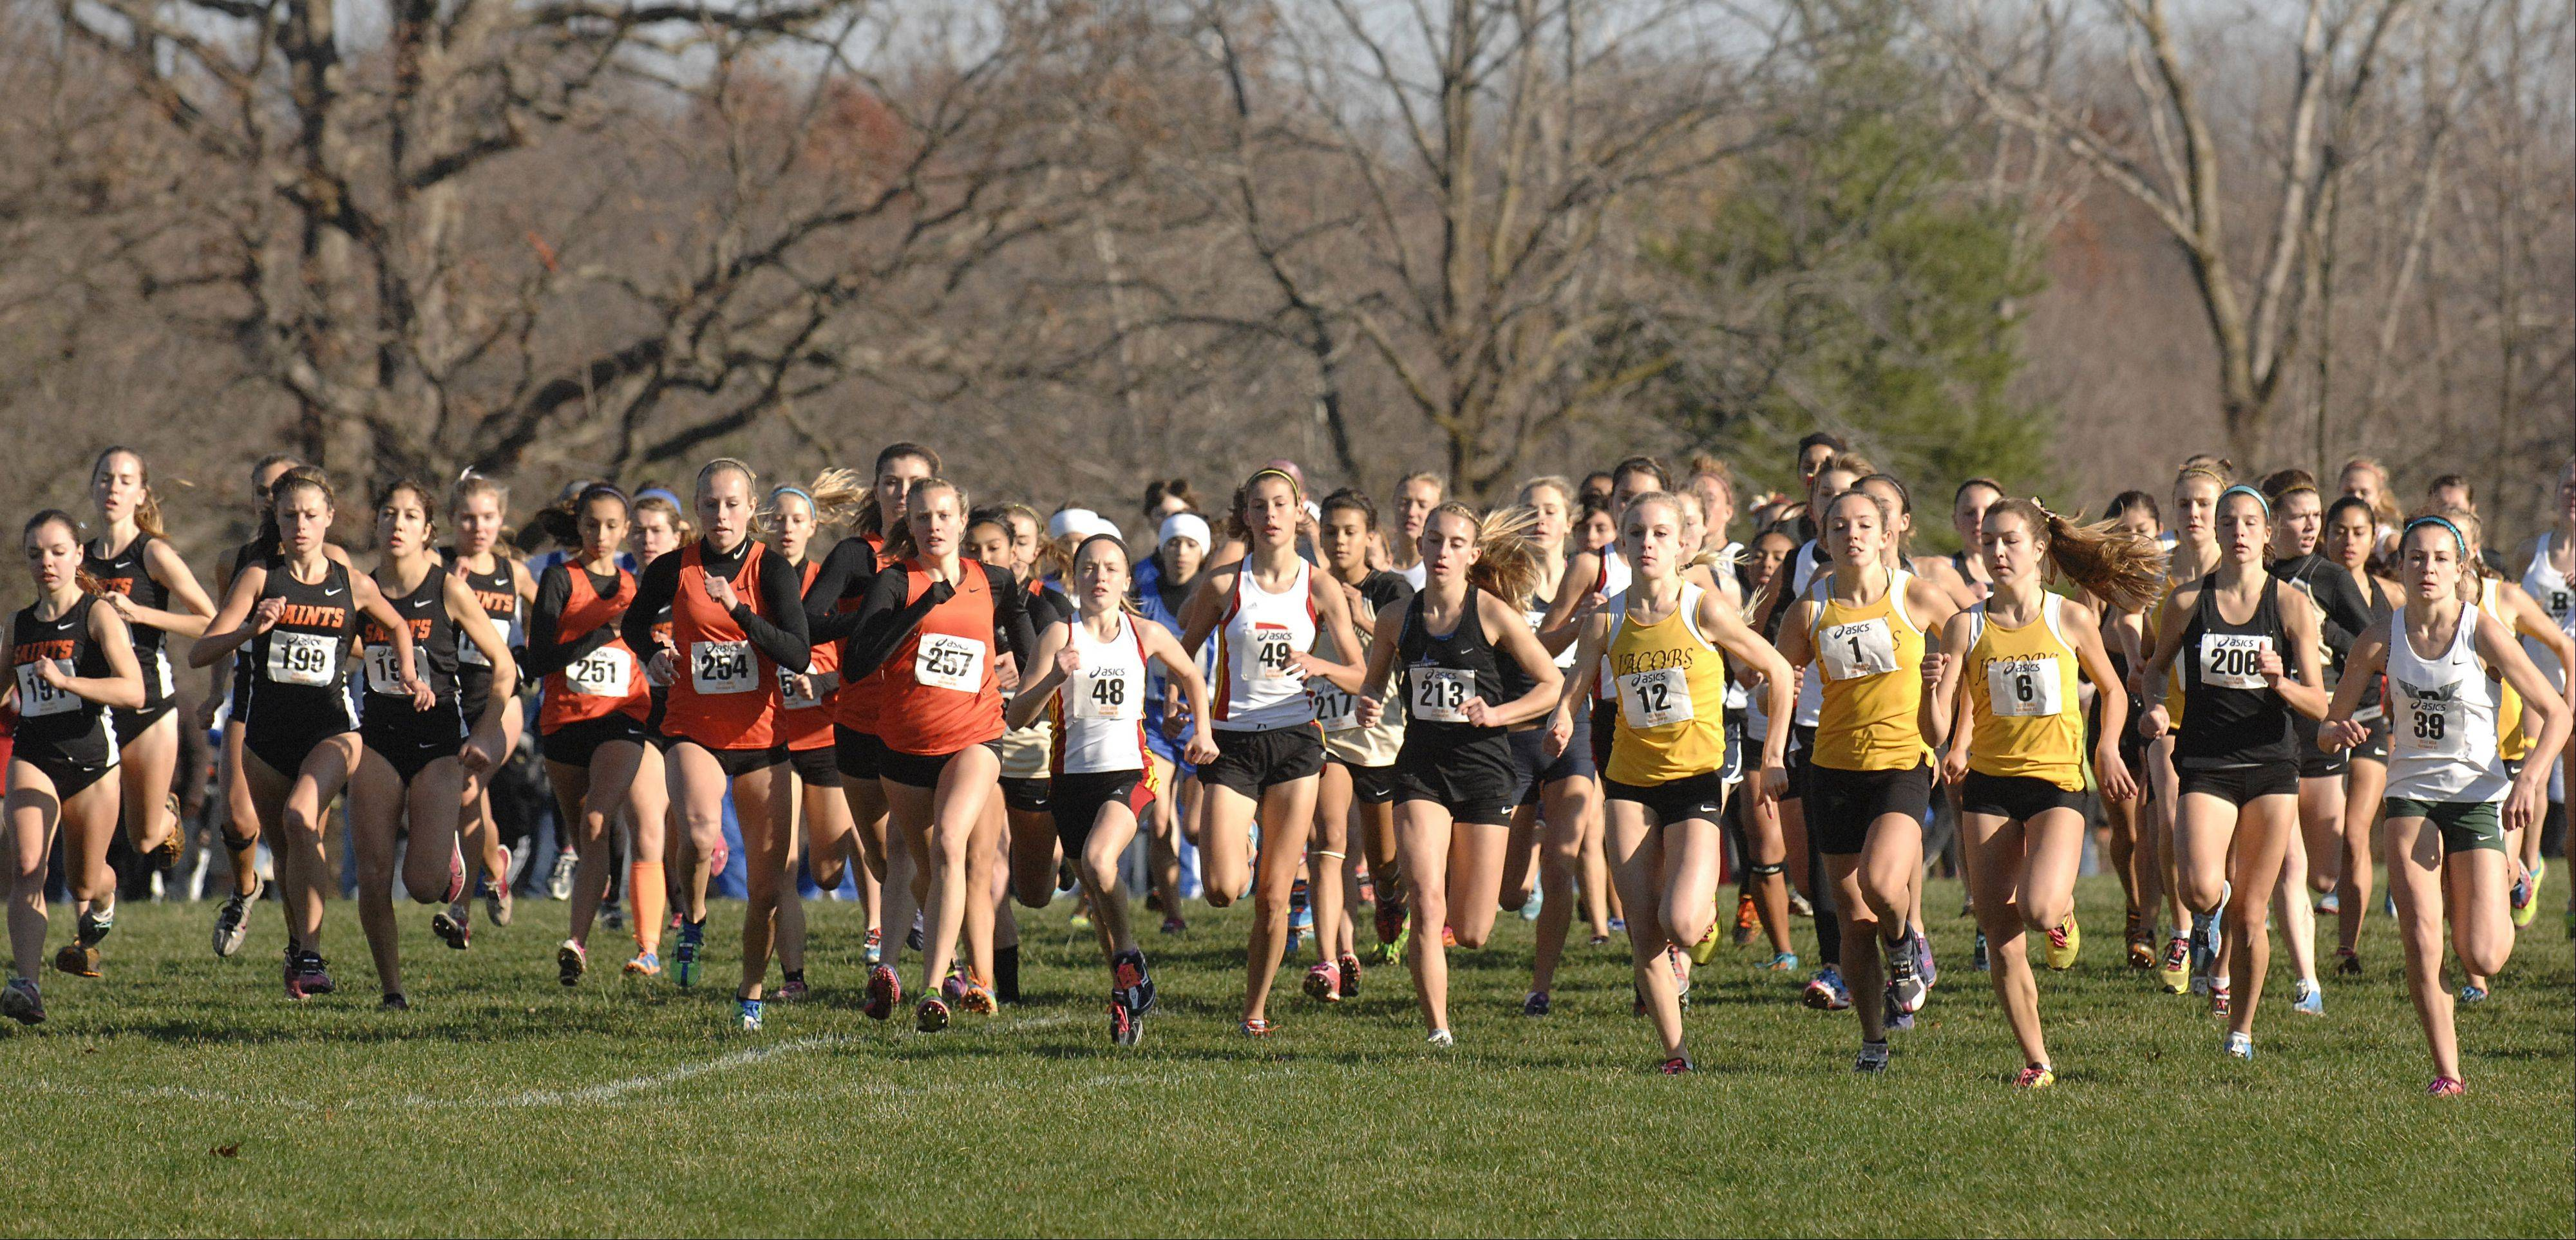 The girls take off at the start of the St. Charles East cross country sectional at LeRoy Oakes in St. Charles on Saturday, October 27.